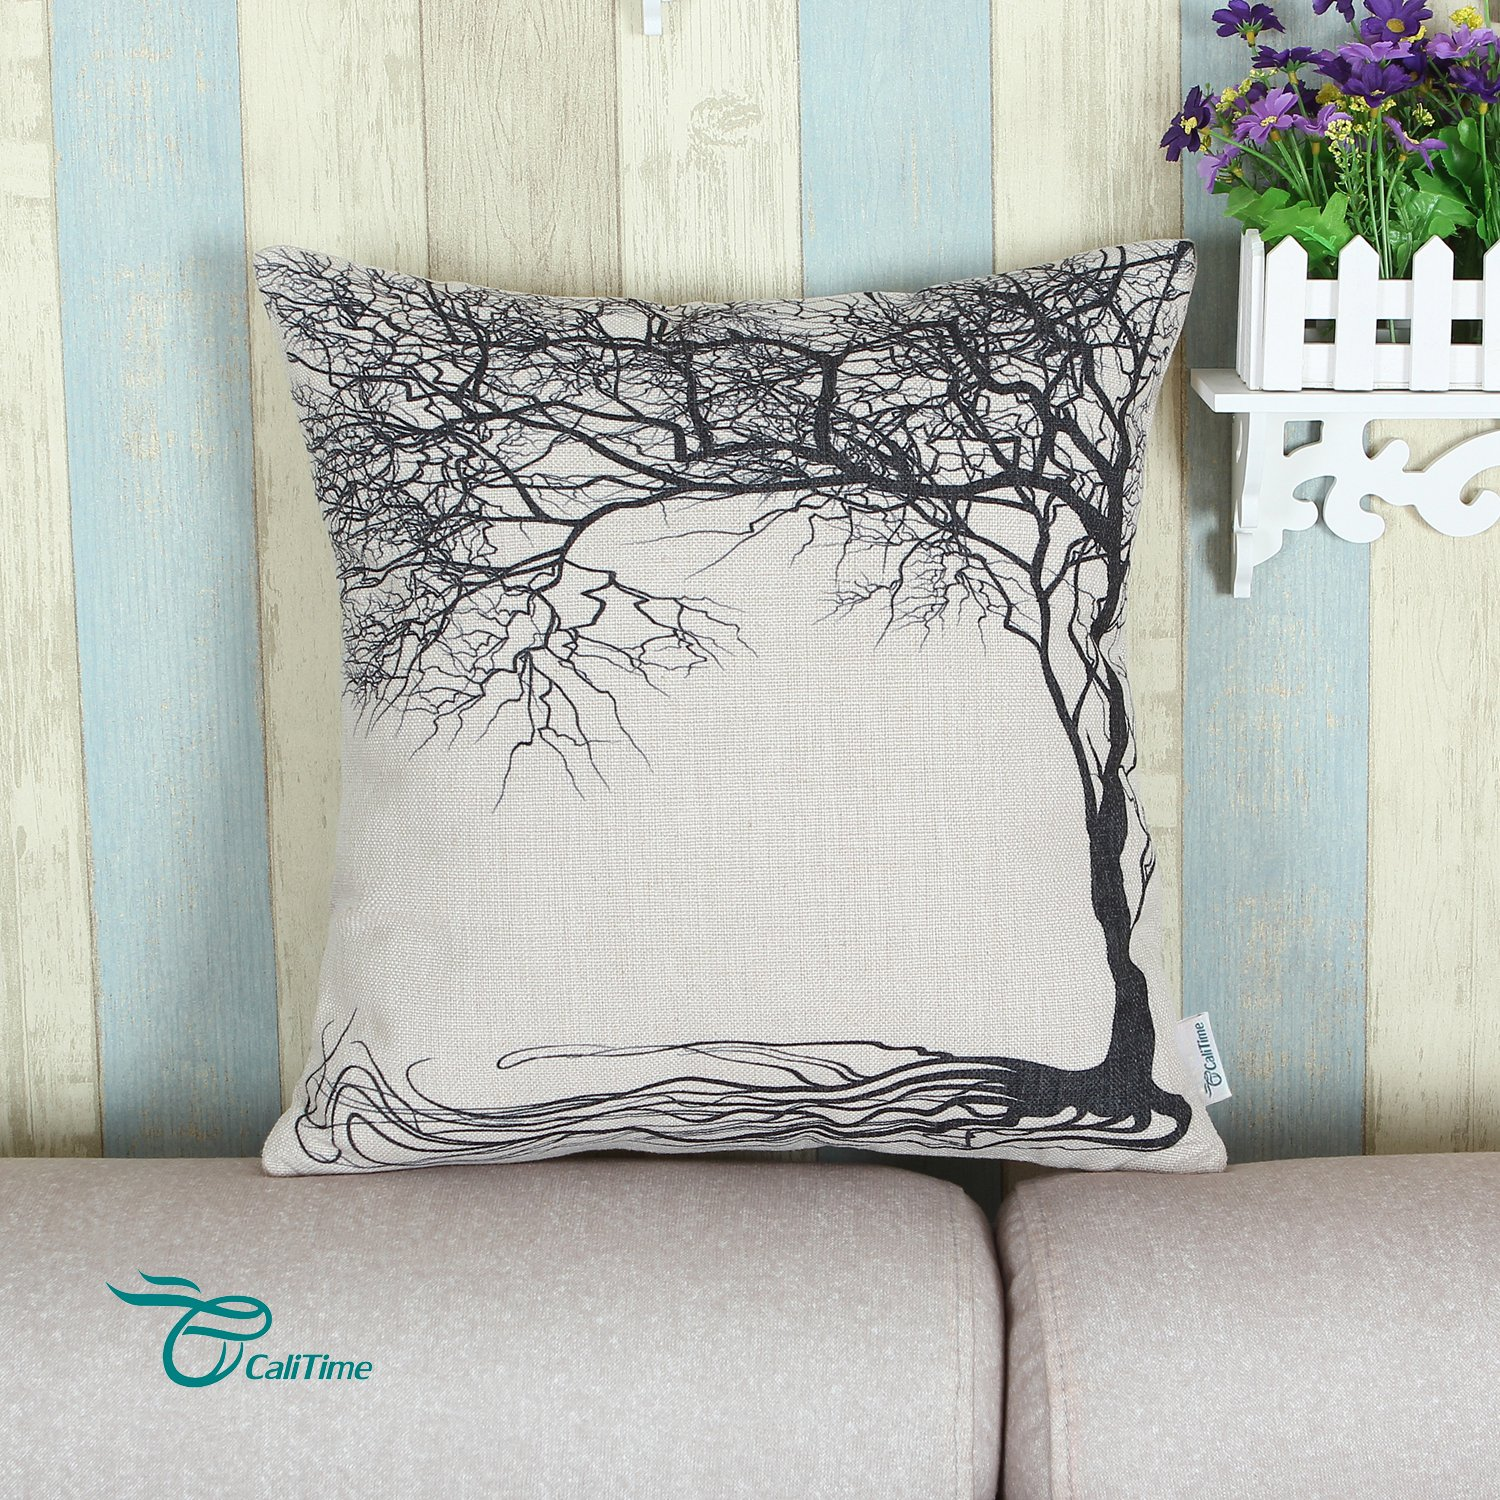 Calitime Canvas Bolster Pillow Cover Case For Couch Sofa Home Decoration Vintage Big Old Tree 12